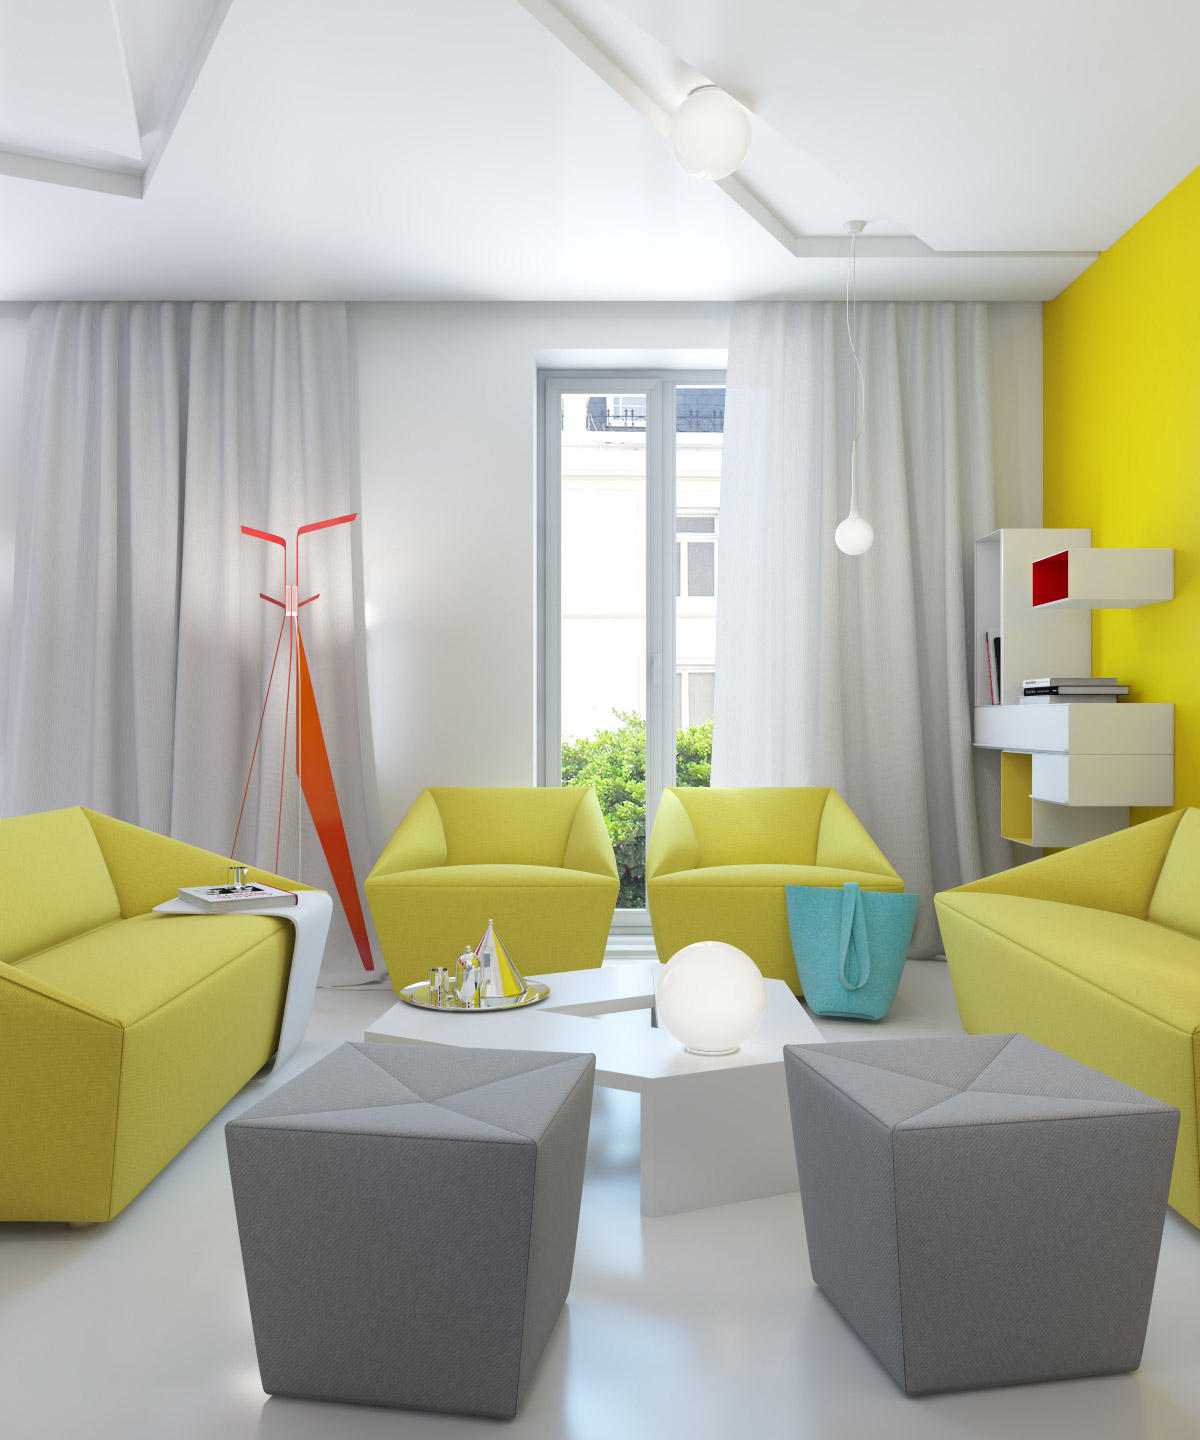 Modern Apartment Interior Design Ideas: Small Apartment Zinging With Color